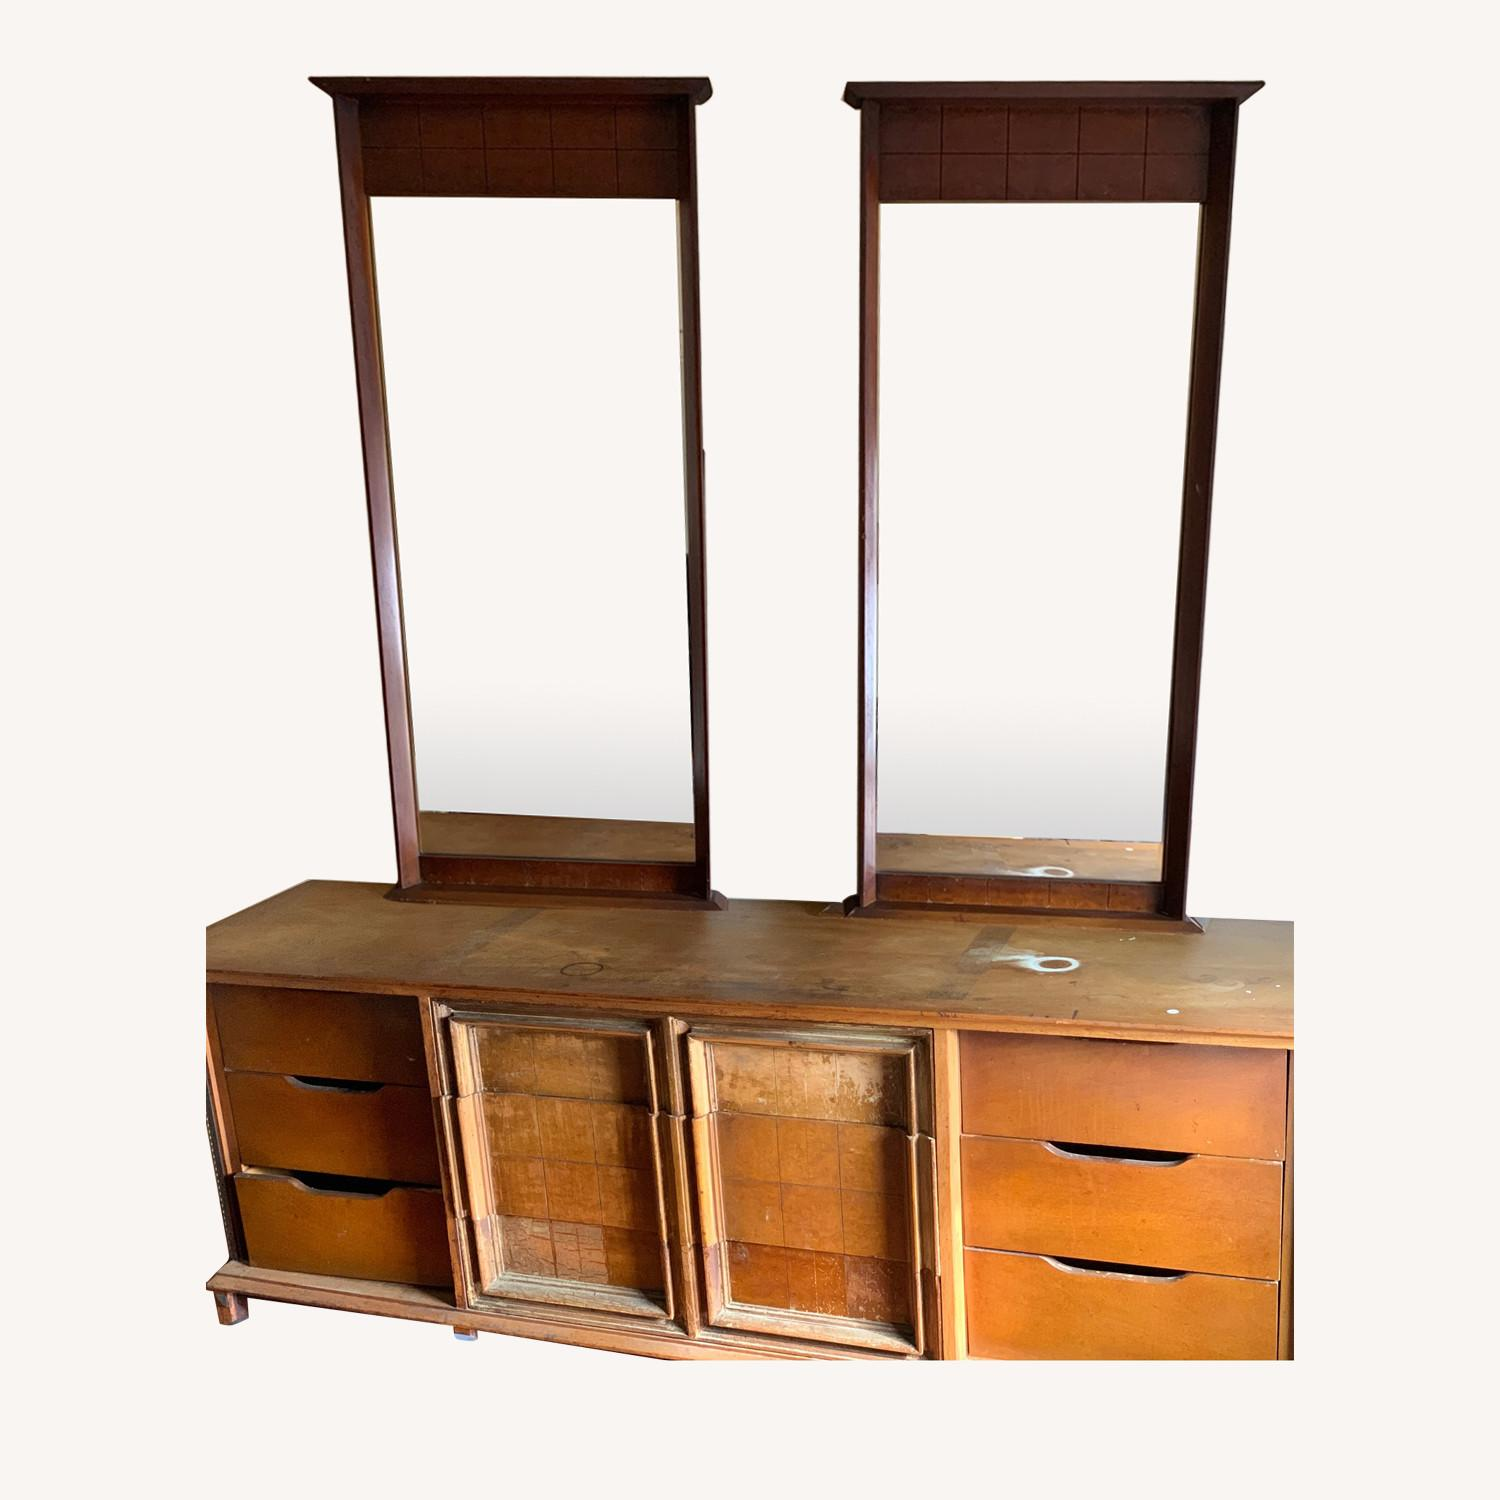 Dresser with mirrors - image-0